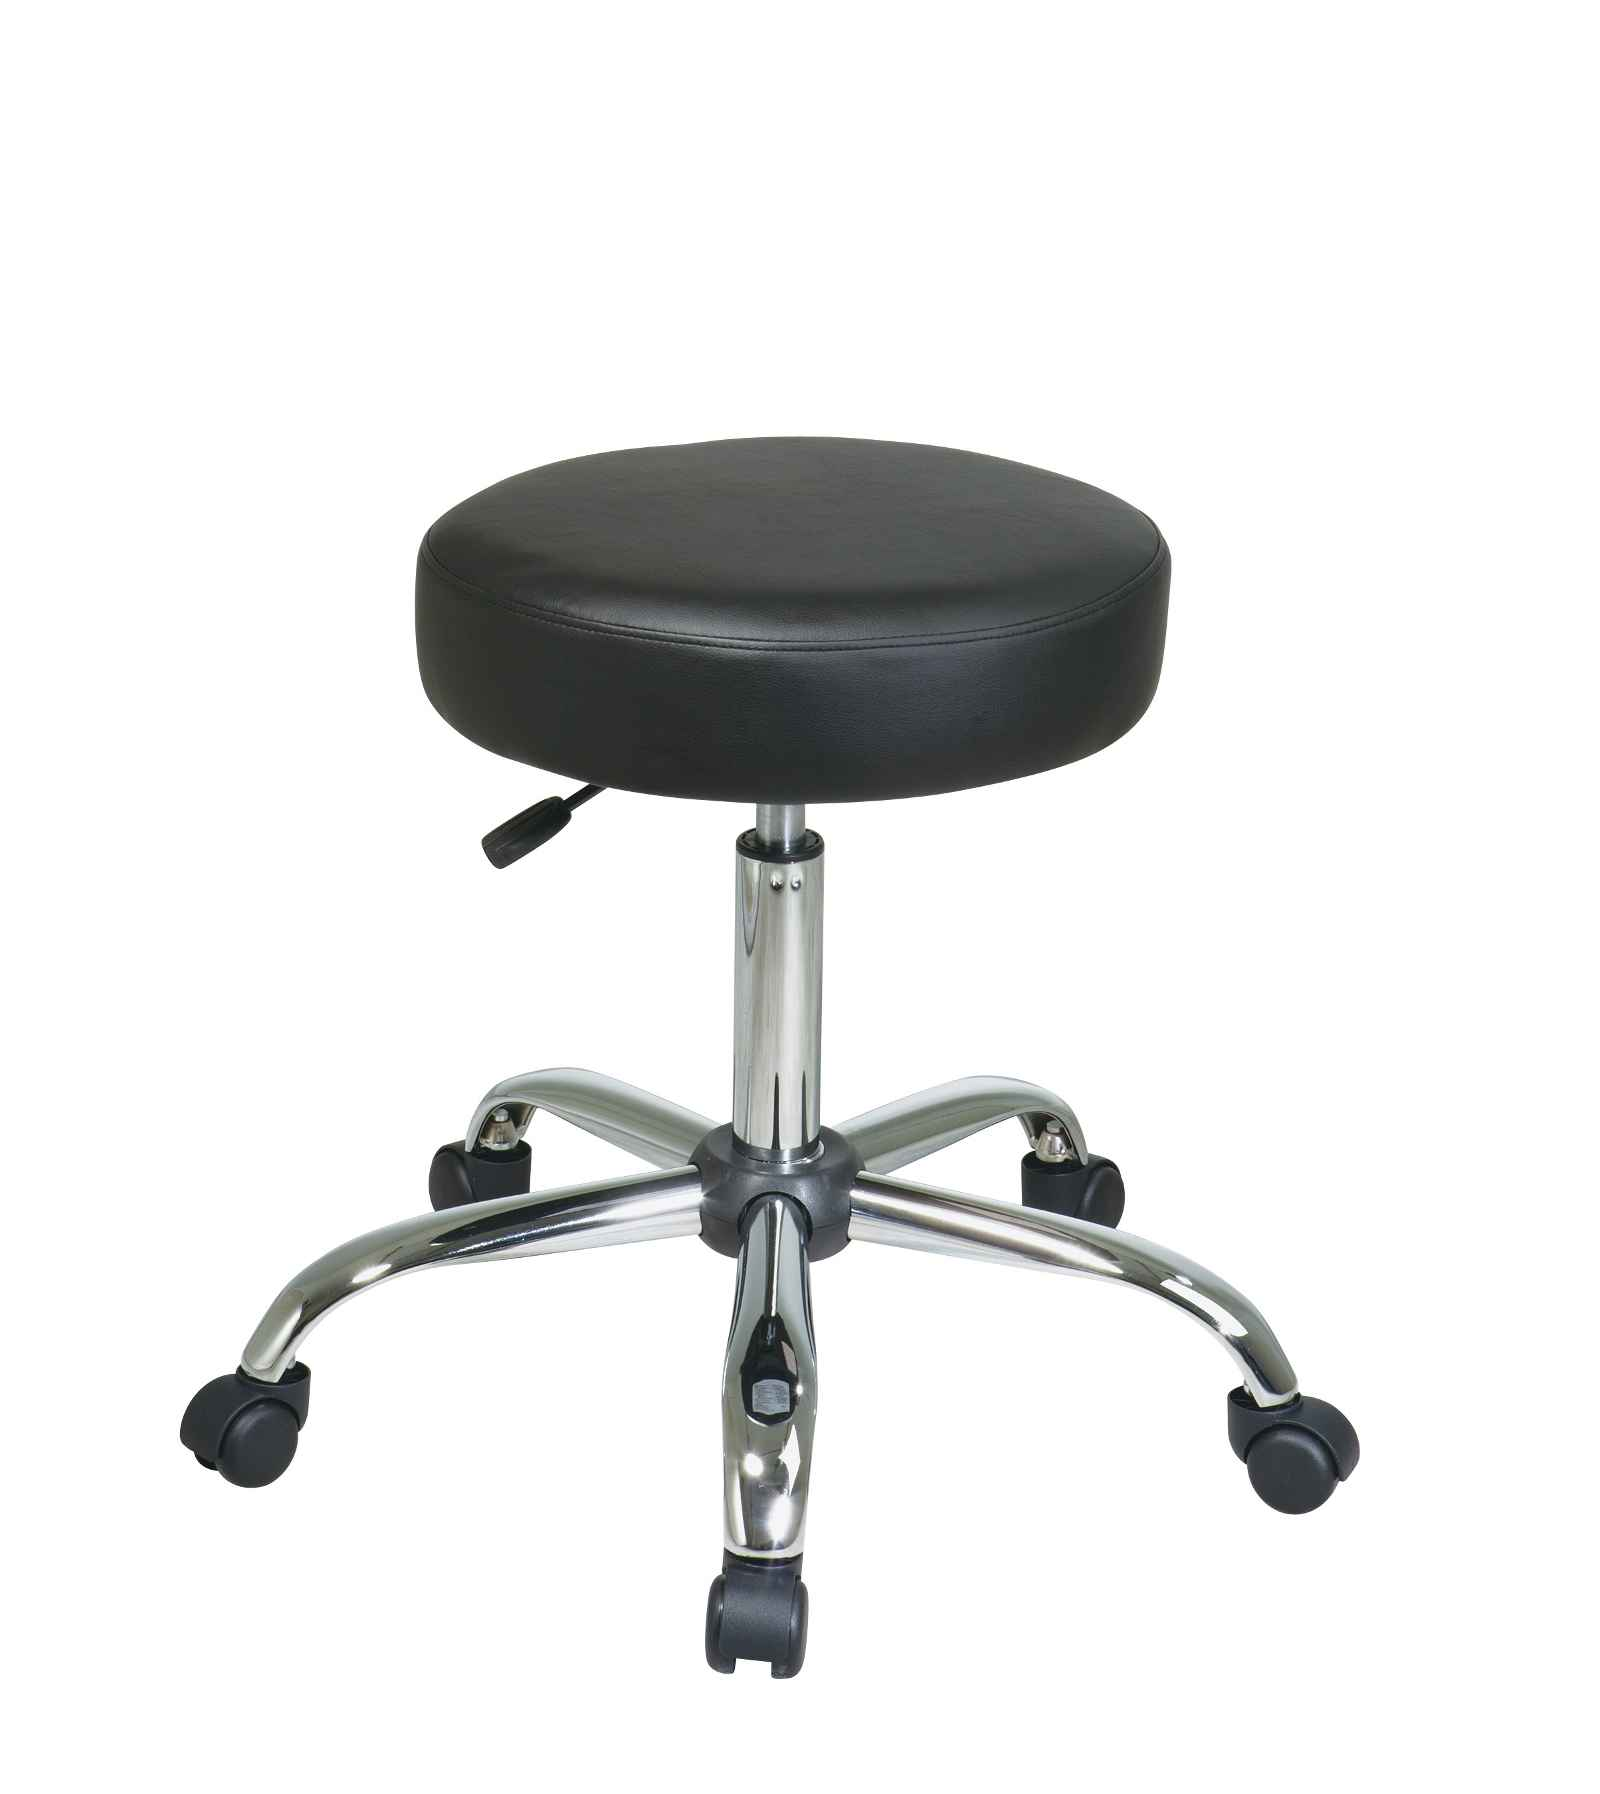 Pneumatic Chair Leather Drafting Chair Stool For Extra Comfort